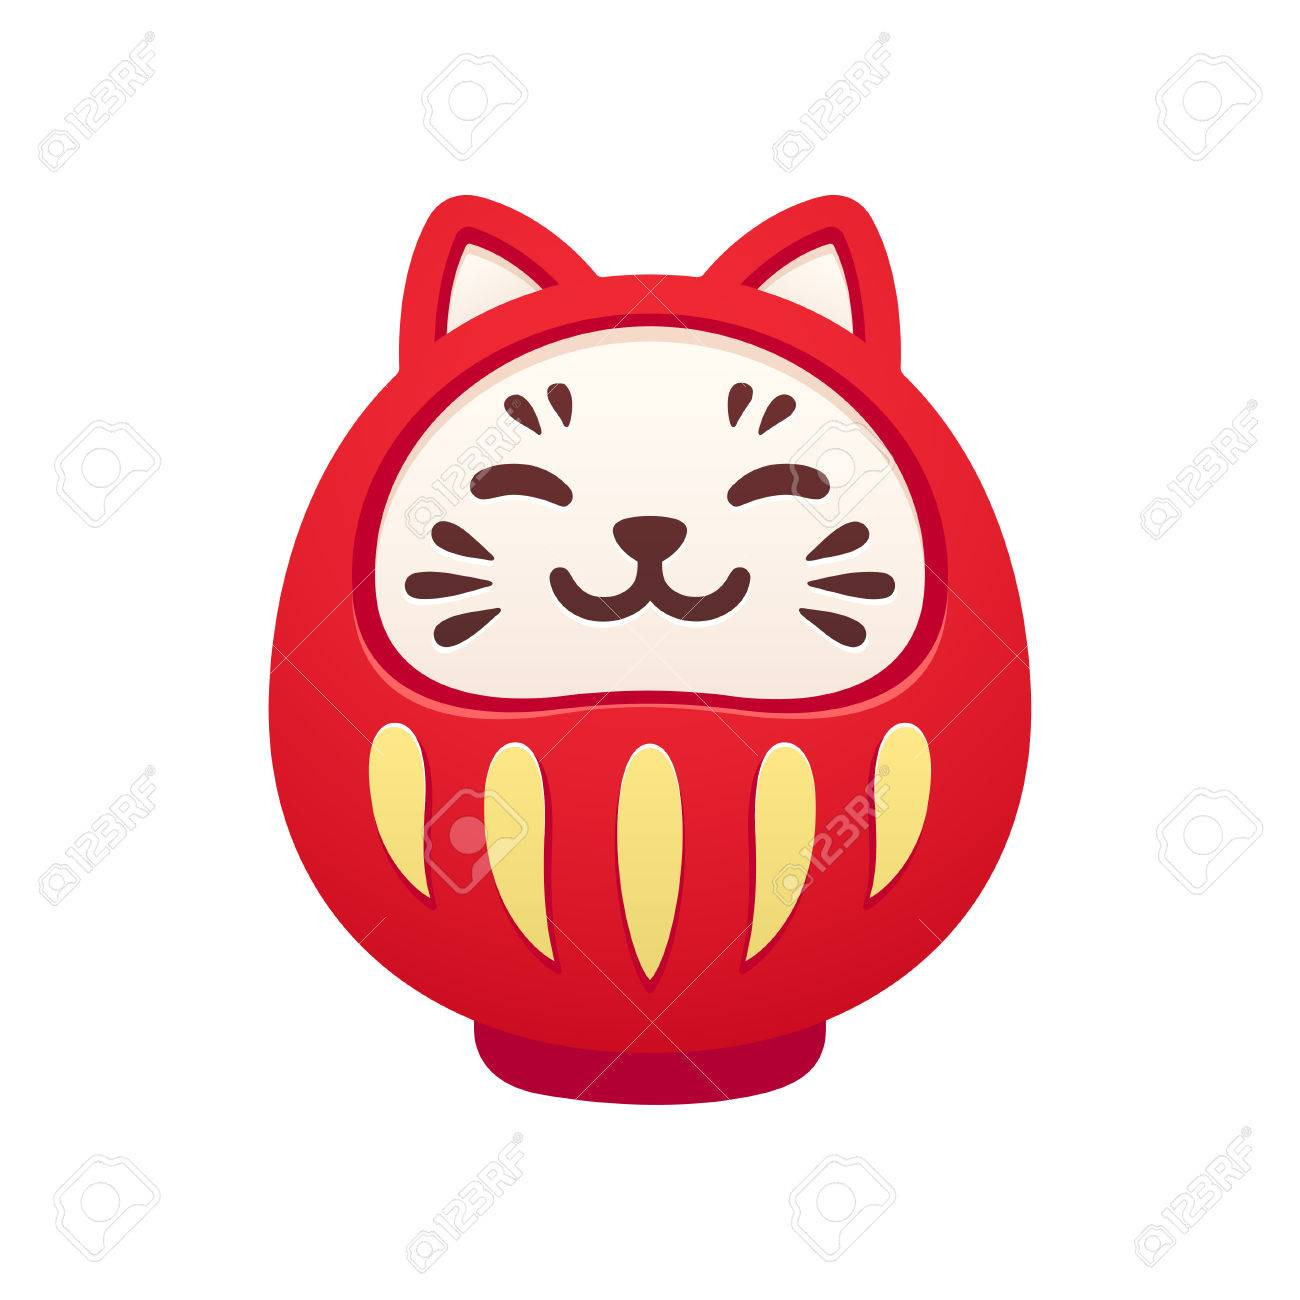 Cute Cat Shaped Traditional Japanese Daruma Doll Kawaii Smiling